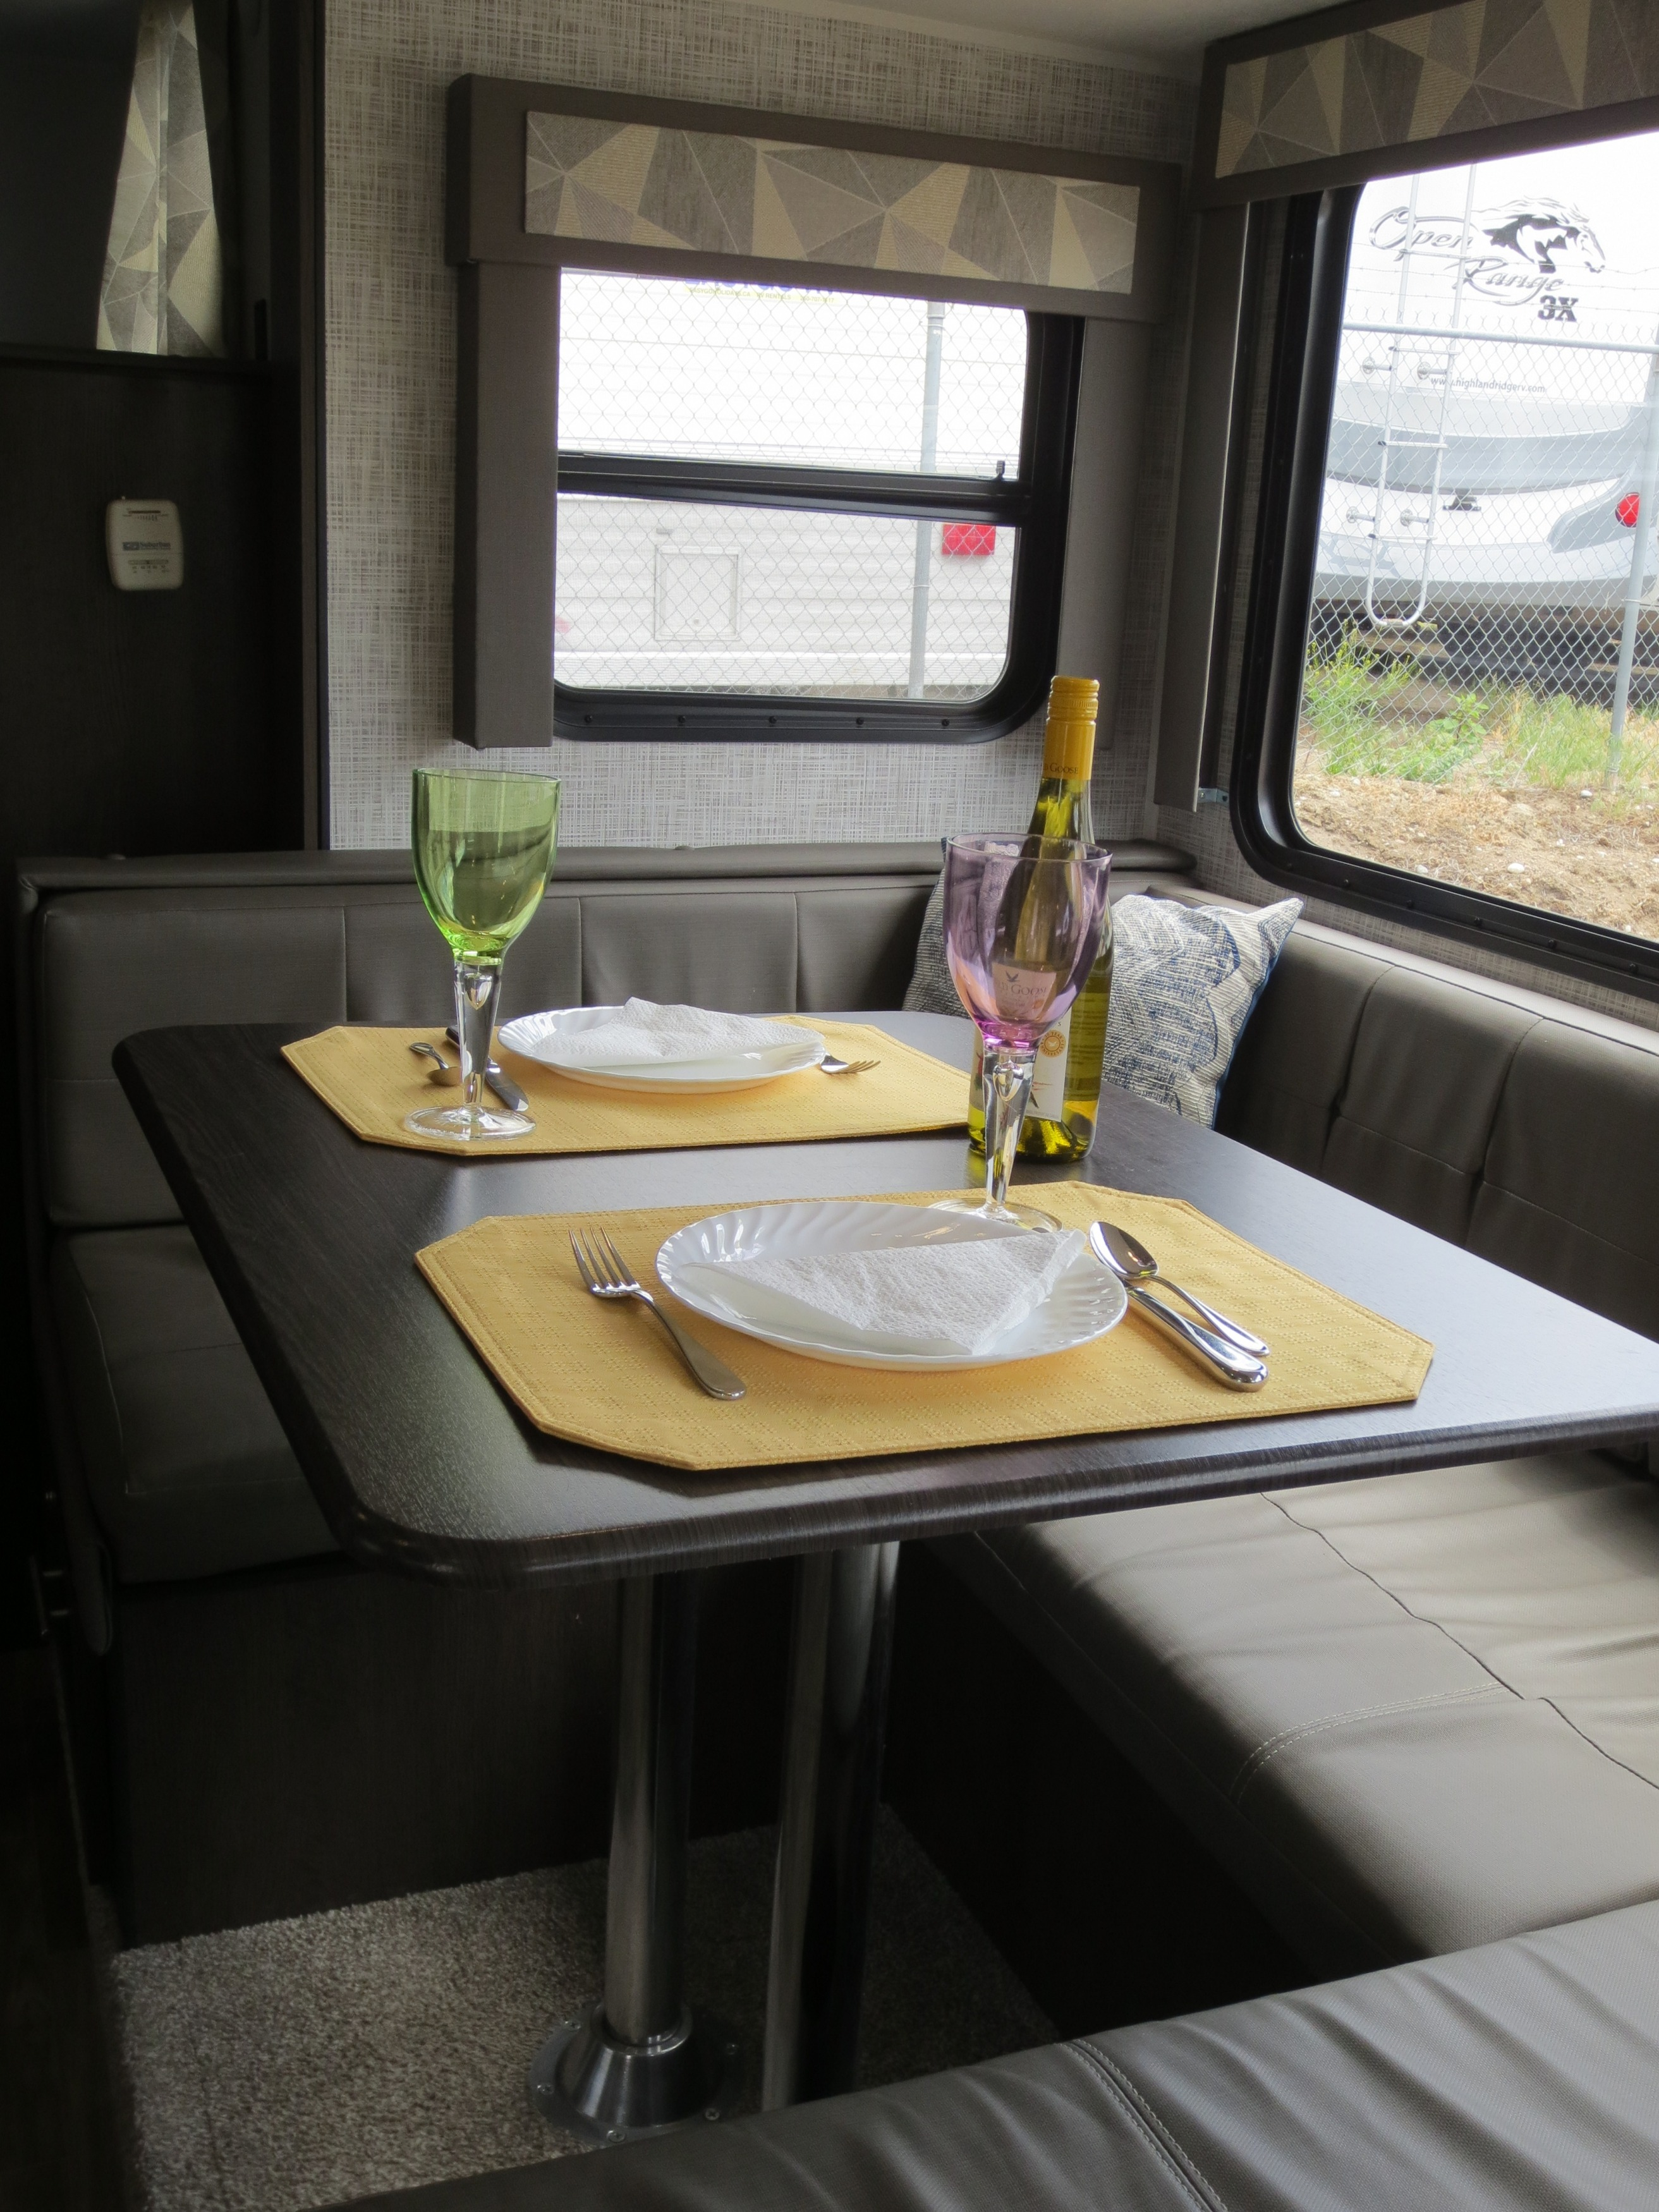 29' Cruise Lite Trailer with Slide-out Dinette View